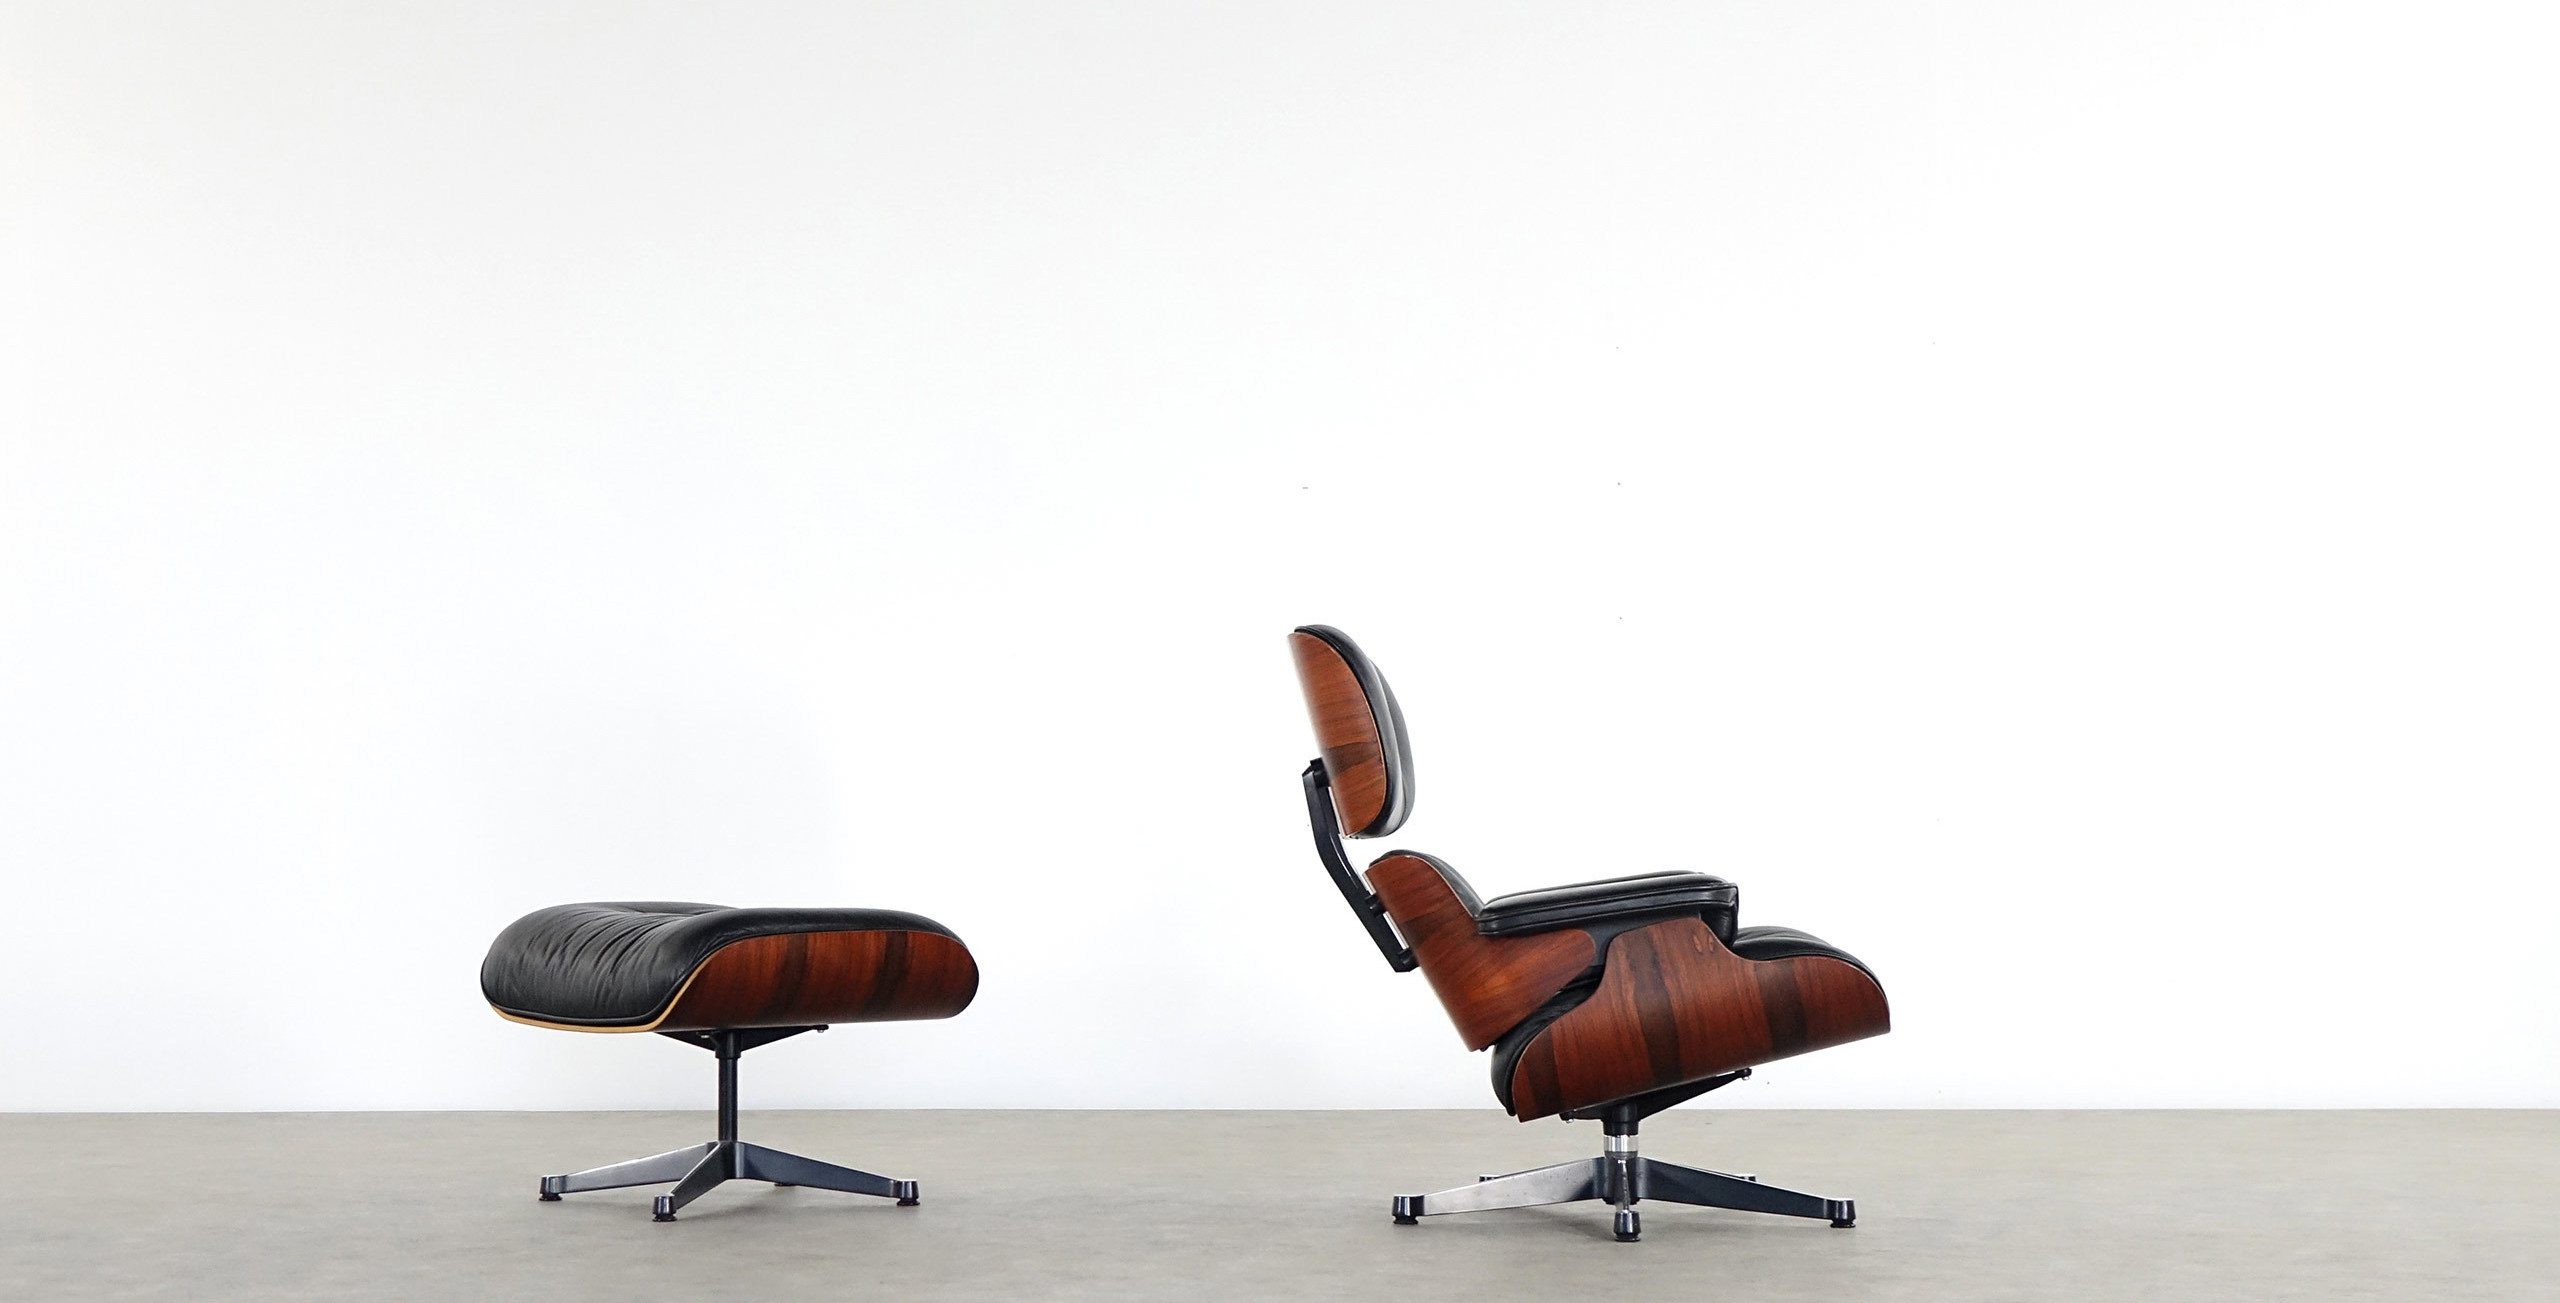 Vitra Eames Lounge Chair Dwg Charles Eames Lounge Chair Ottoman Herman Miller Rosewood